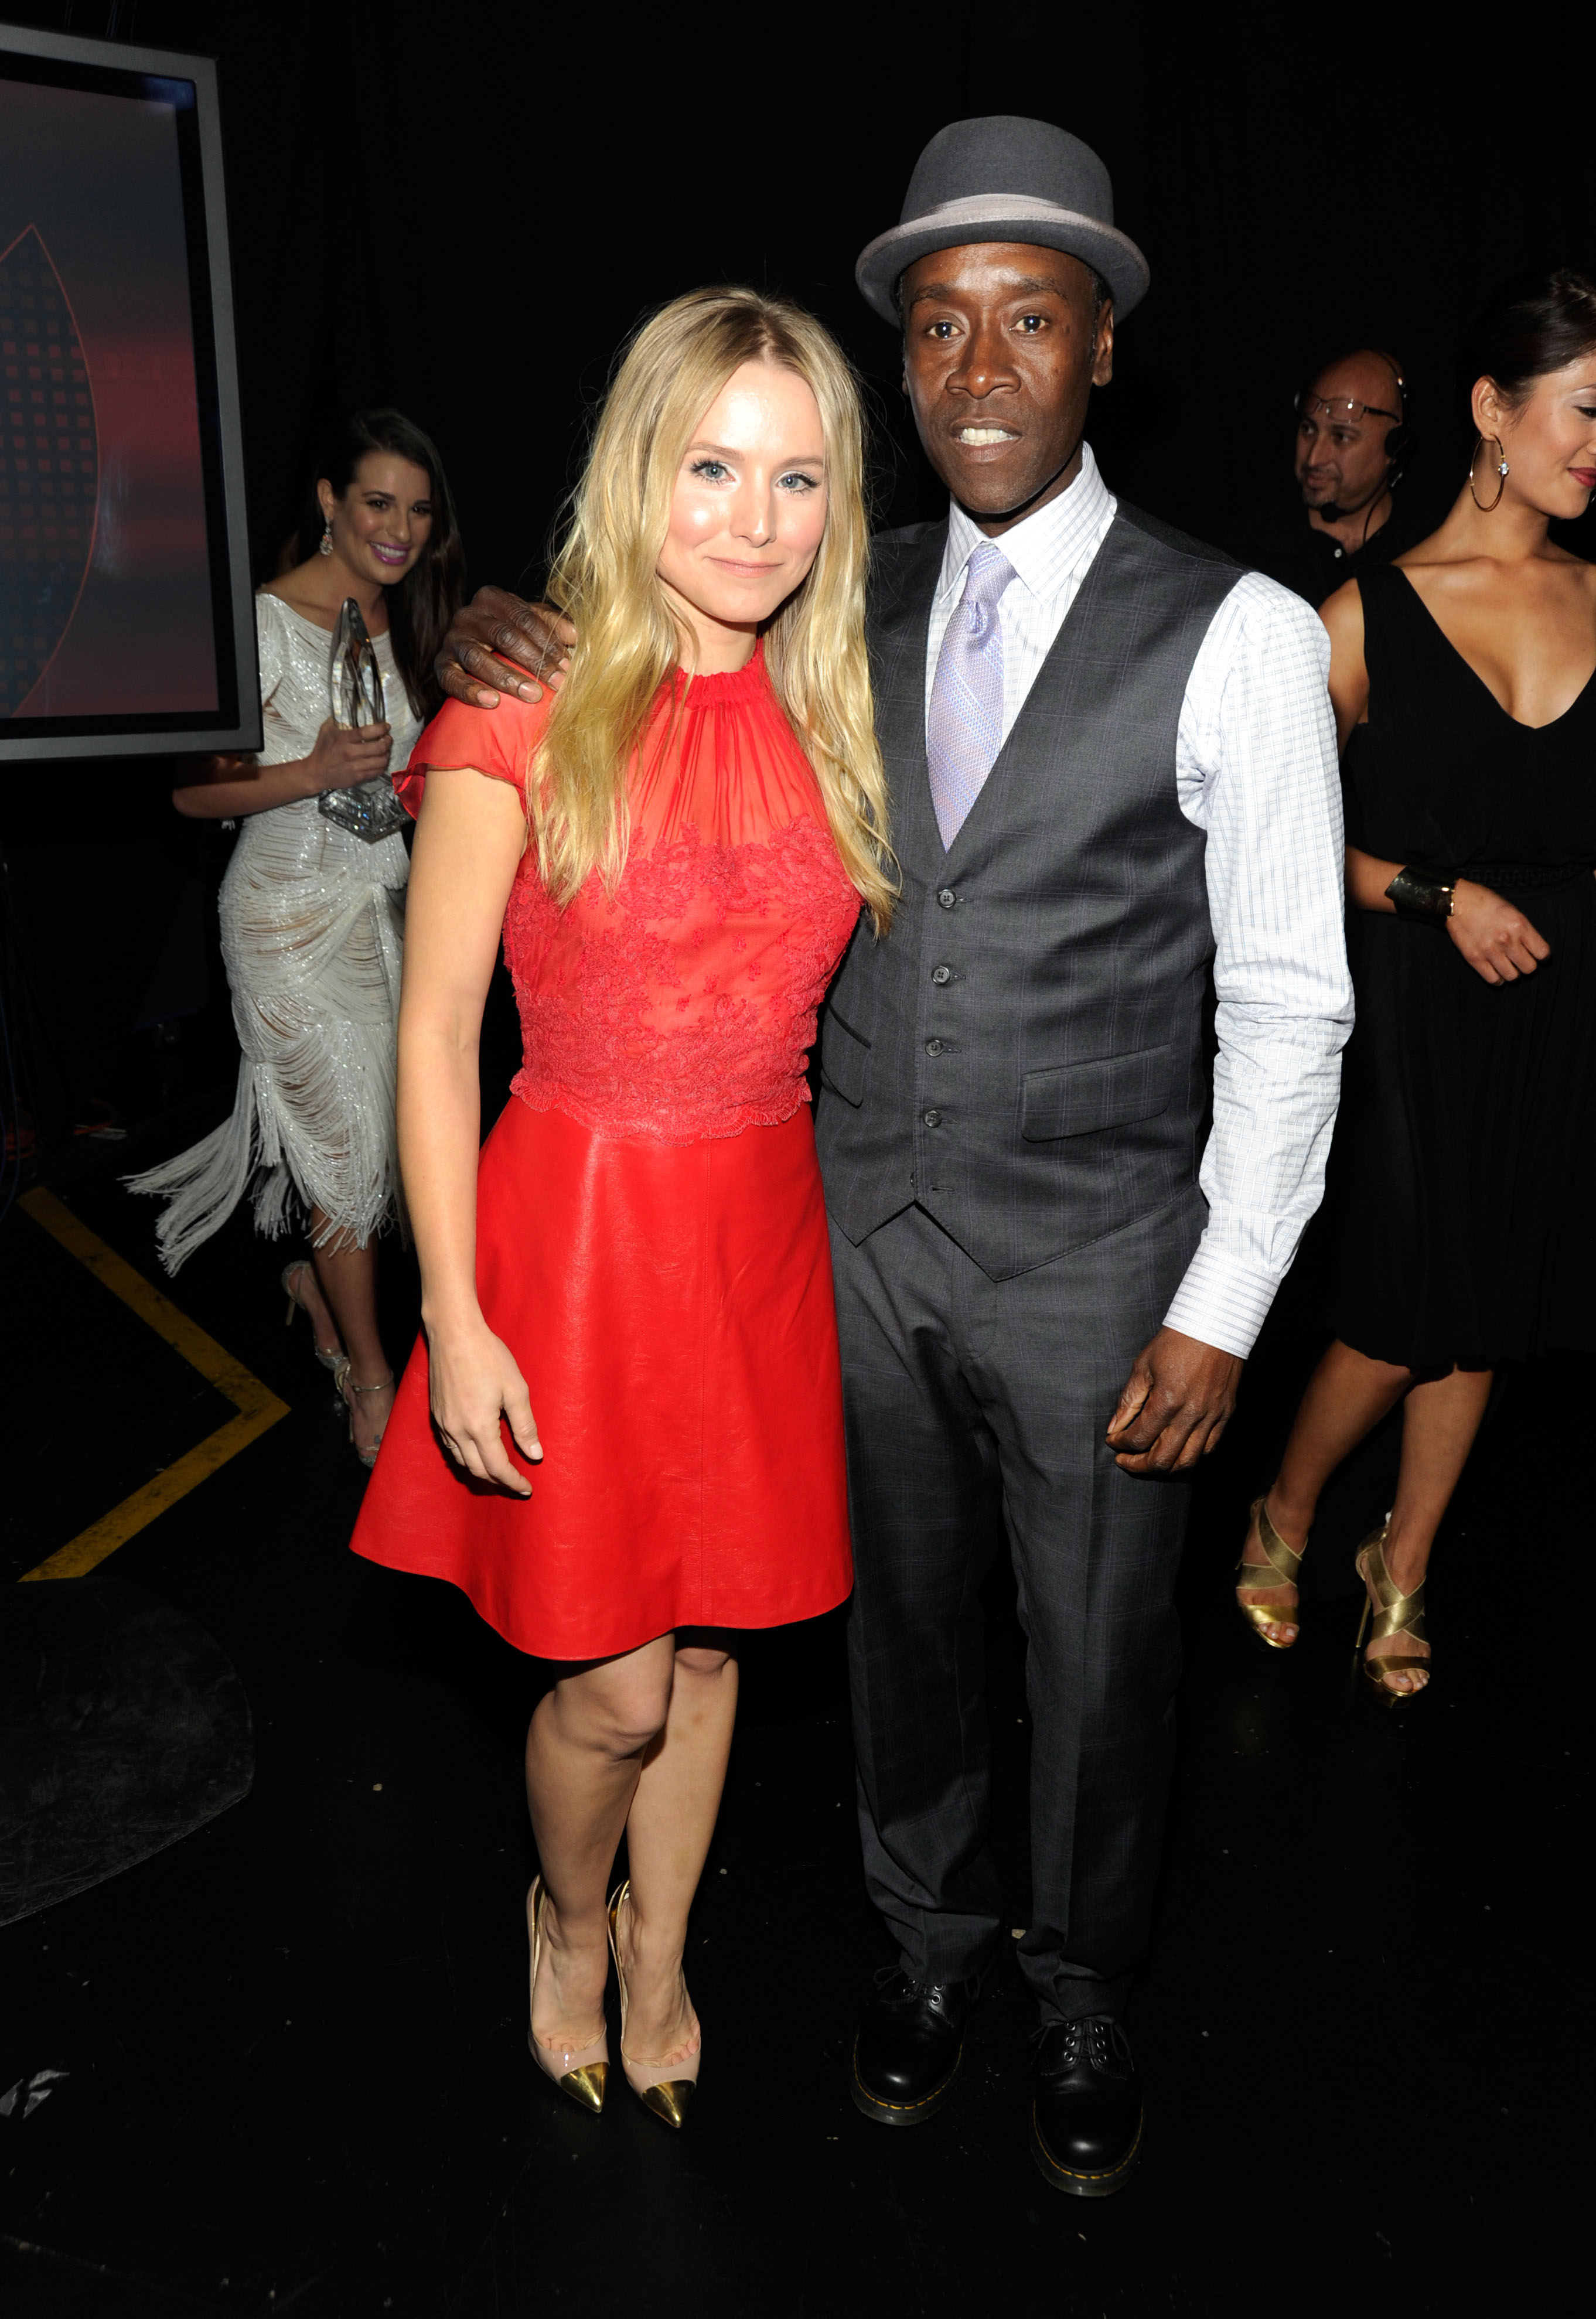 Kristen Bell and Don Cheadle